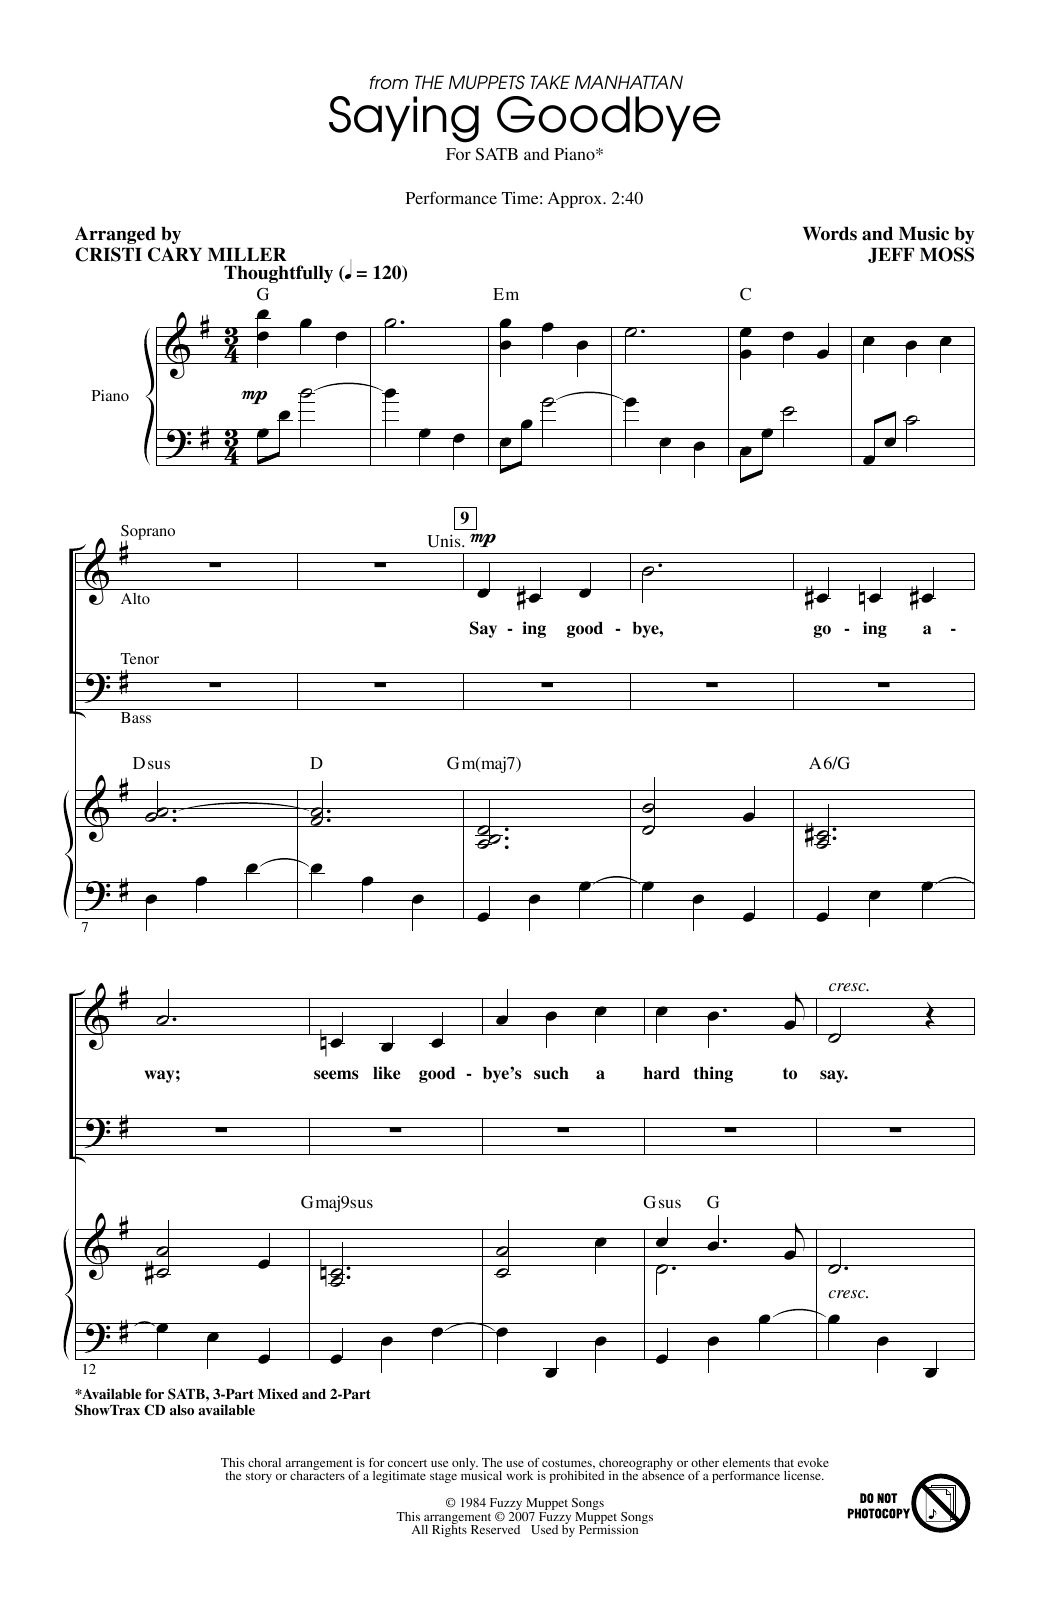 Jeff Moss Saying Goodbye (from The Muppets Take Manhattan) (arr. Cristi Cary Miller) sheet music notes printable PDF score